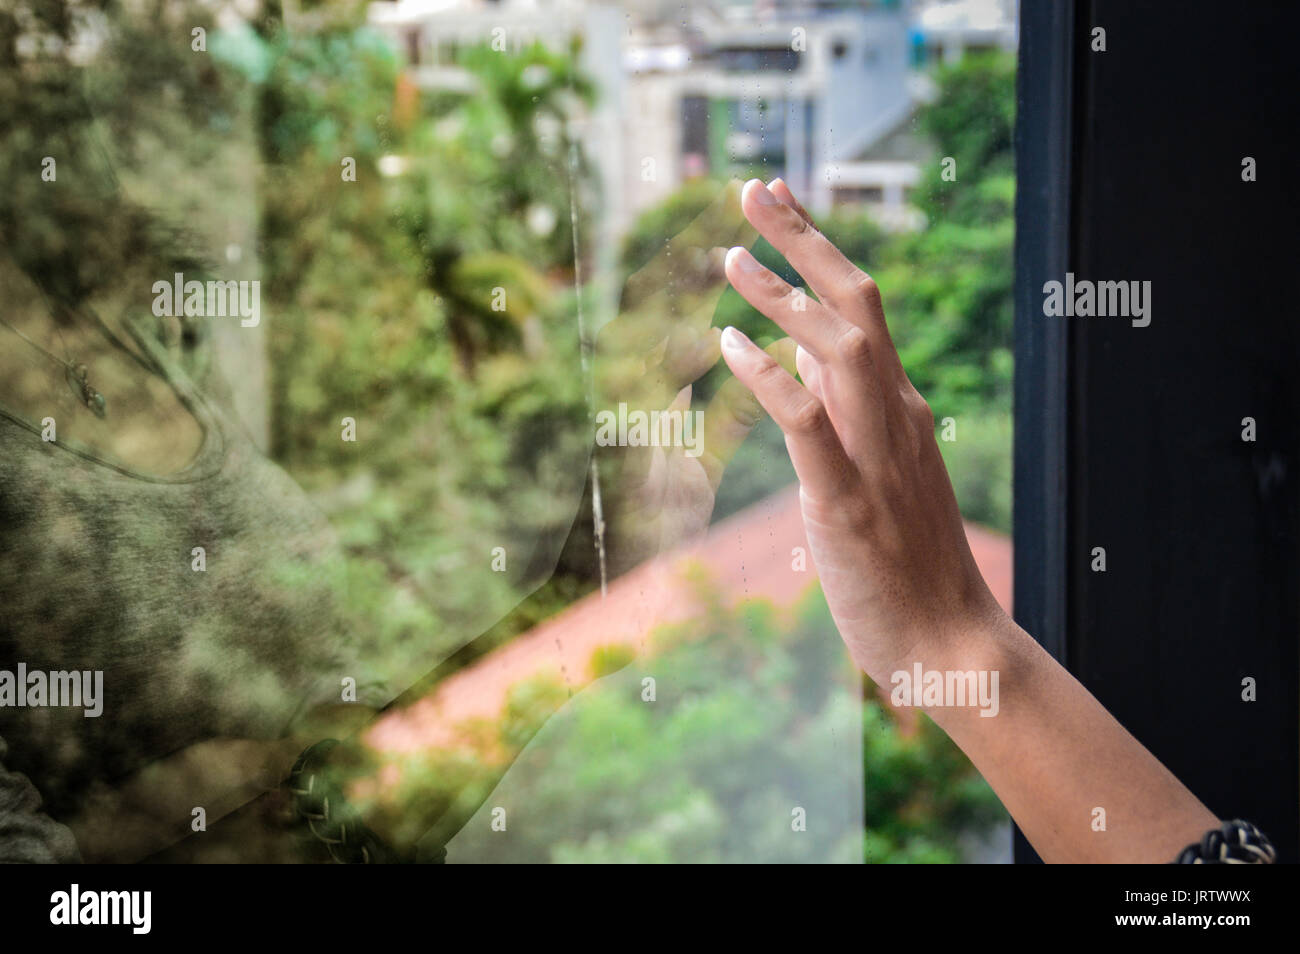 Reflection of a human hand touching a glass window showing the concept of longing and sadness - Stock Image